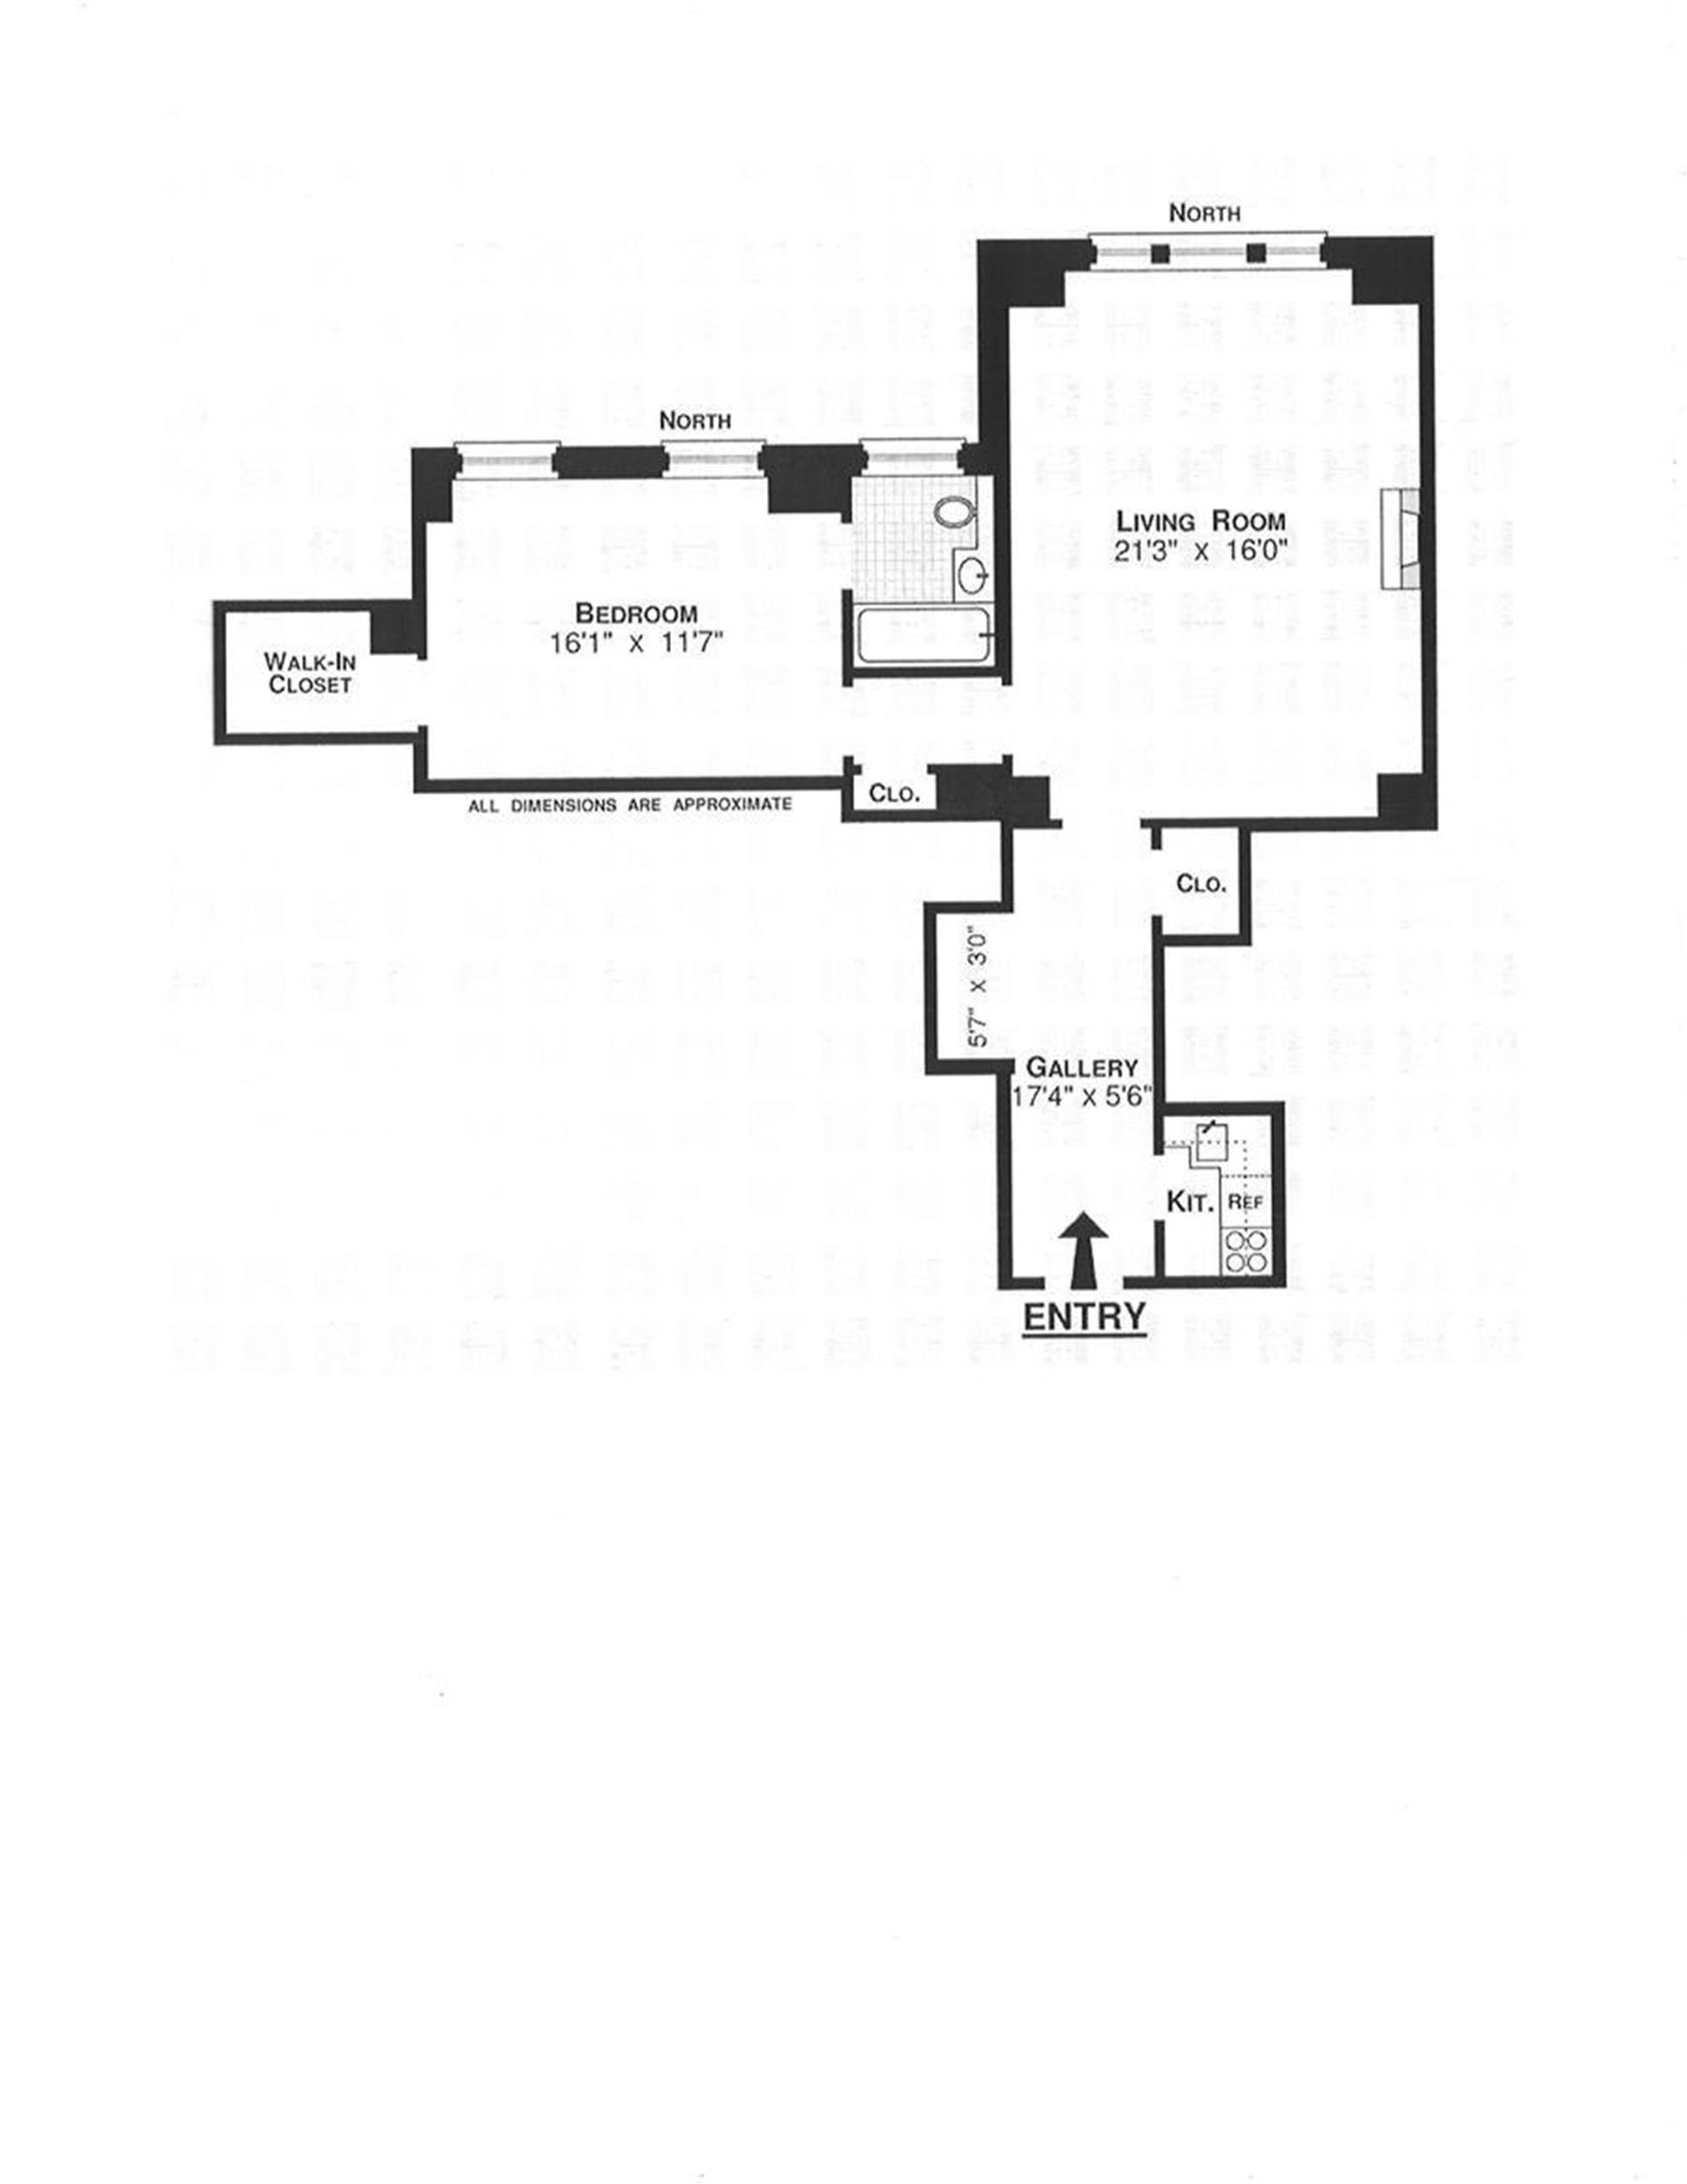 Floor plan of 465 Park Avenue, 12F - Midtown, New York